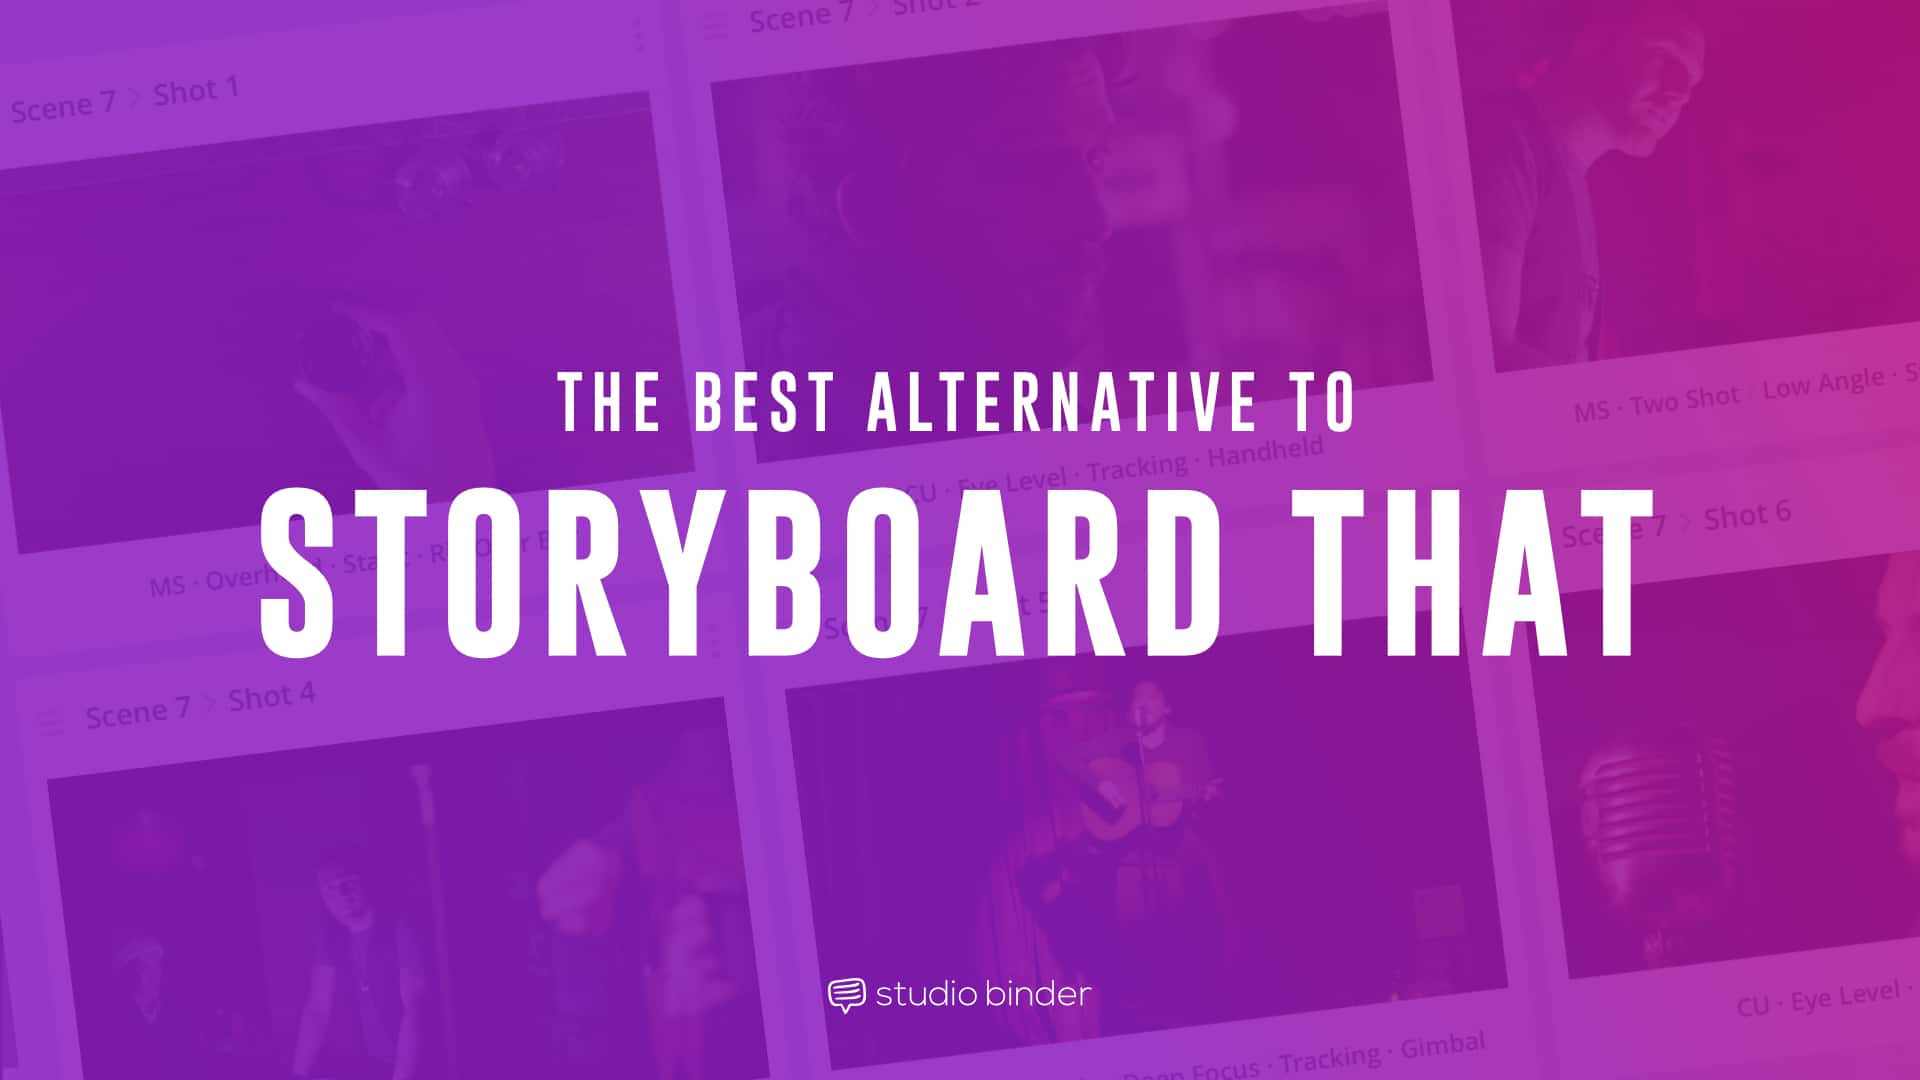 Storyboard That is among many online storyboarding software options. It was designed as a catch-all storyboard maker for educators, businesses and video. But it's really just a clunky storyboard website with superfluous, slow-loading features that detract from industry-standard storyboard tools for video like StudioBinder.